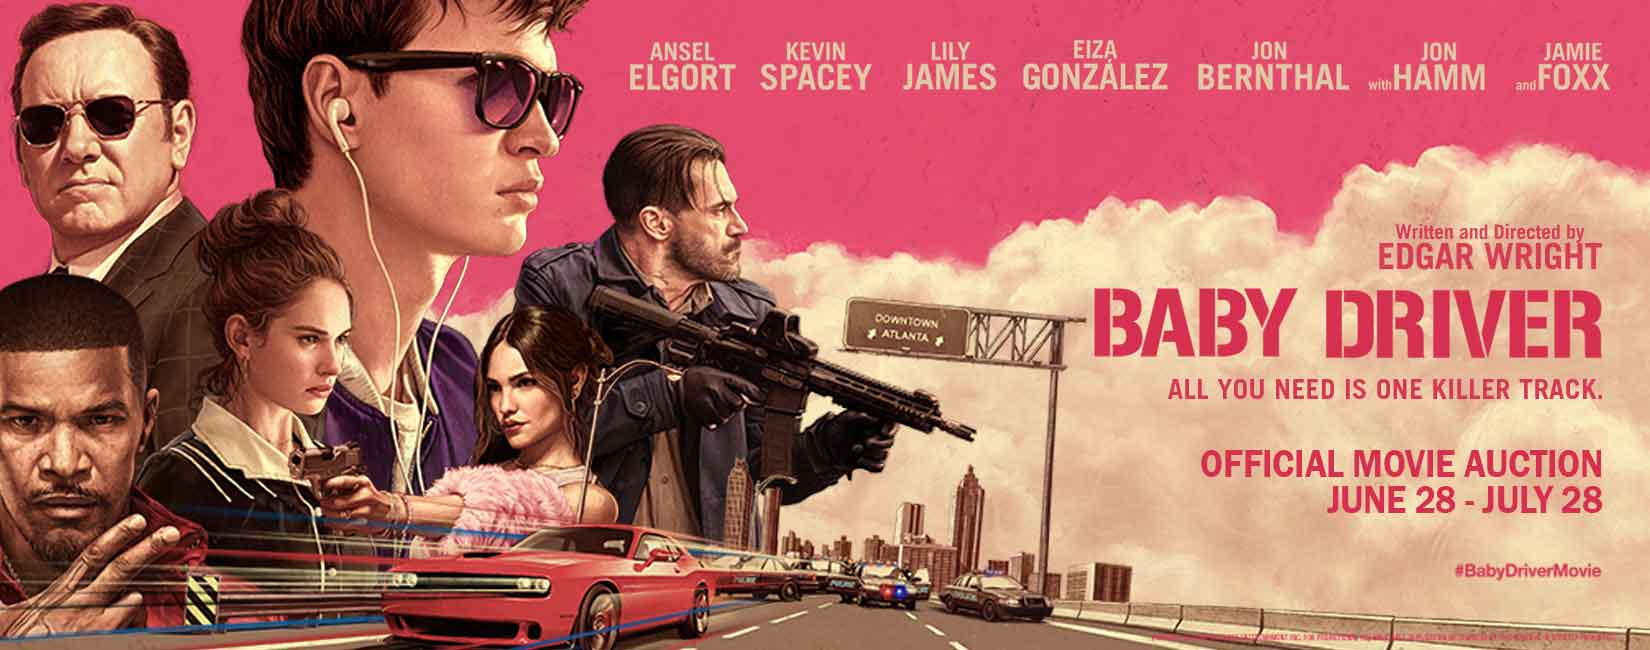 babydriverbannerlive2.jpg